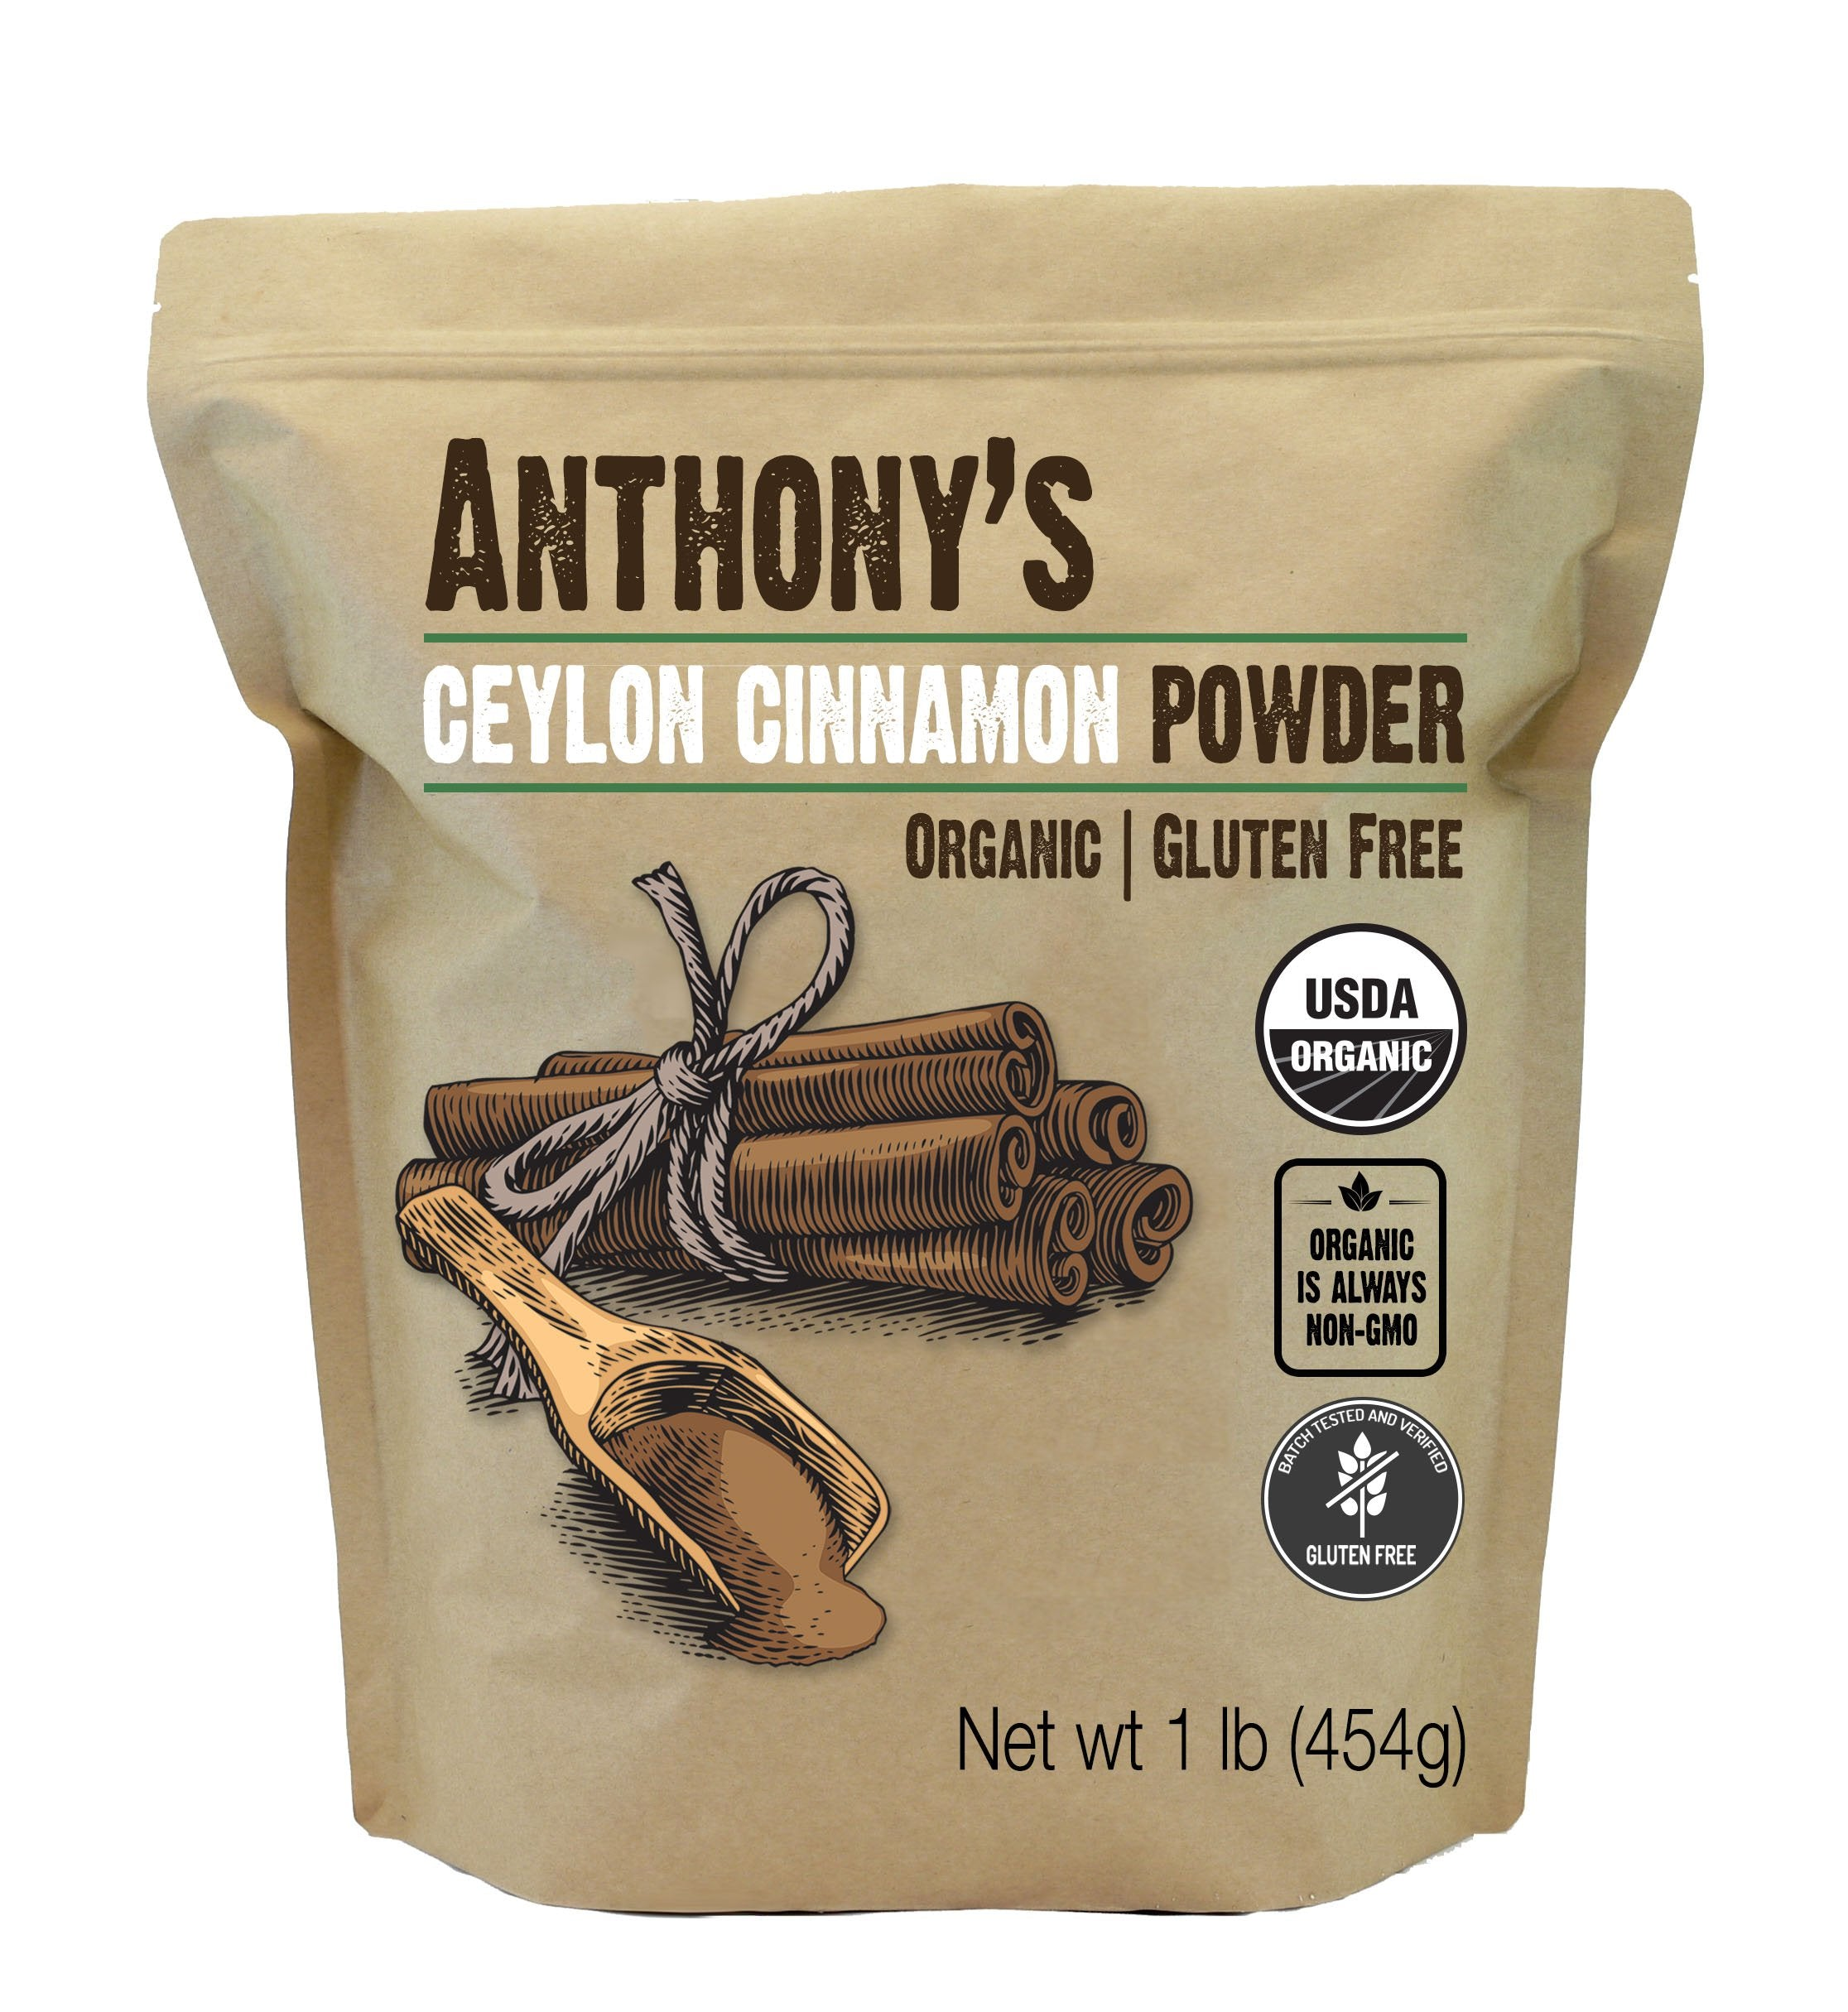 Ceylon Cinnamon Powder: USDA Organic & Batch Tested Gluten Free